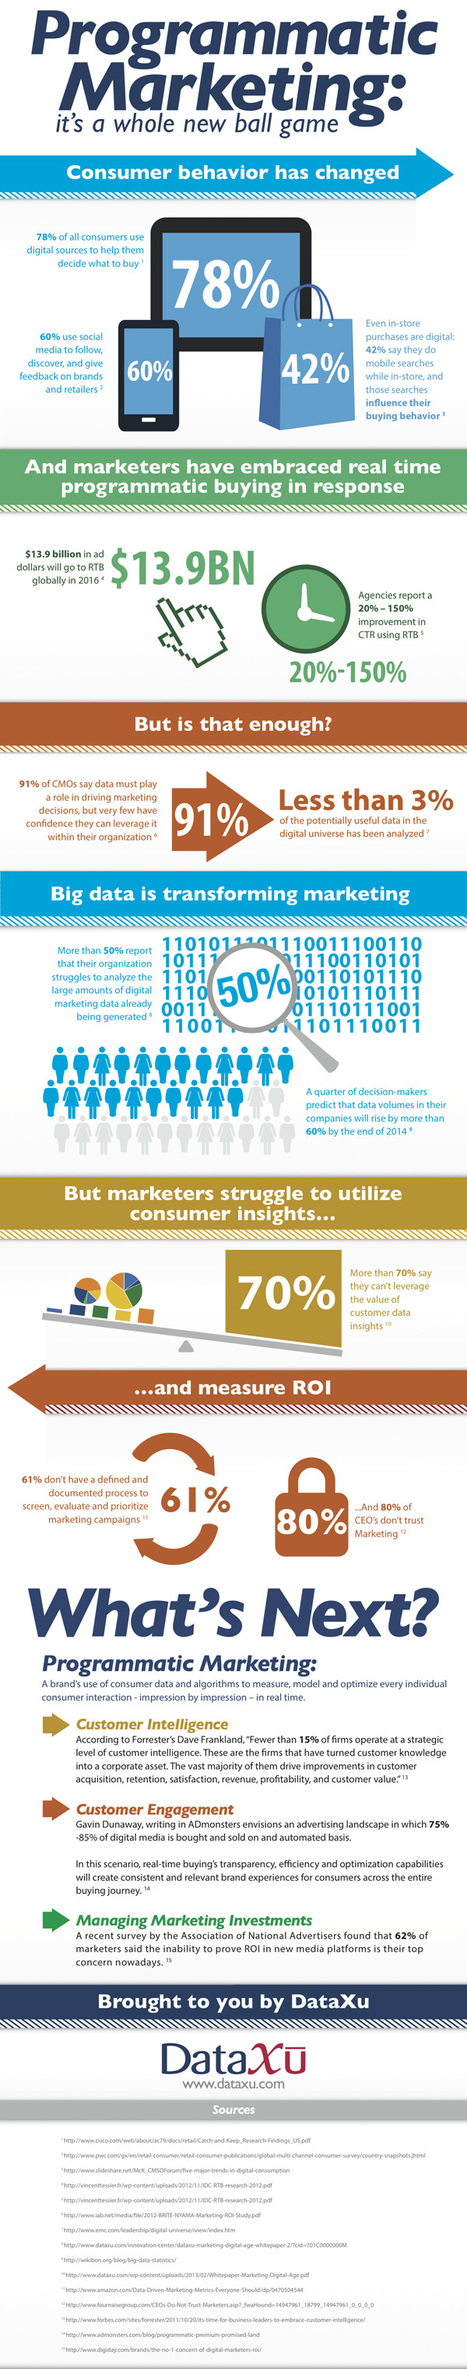 Programmatic Marketing Infographic by Dataxu | RTB | Scoop.it